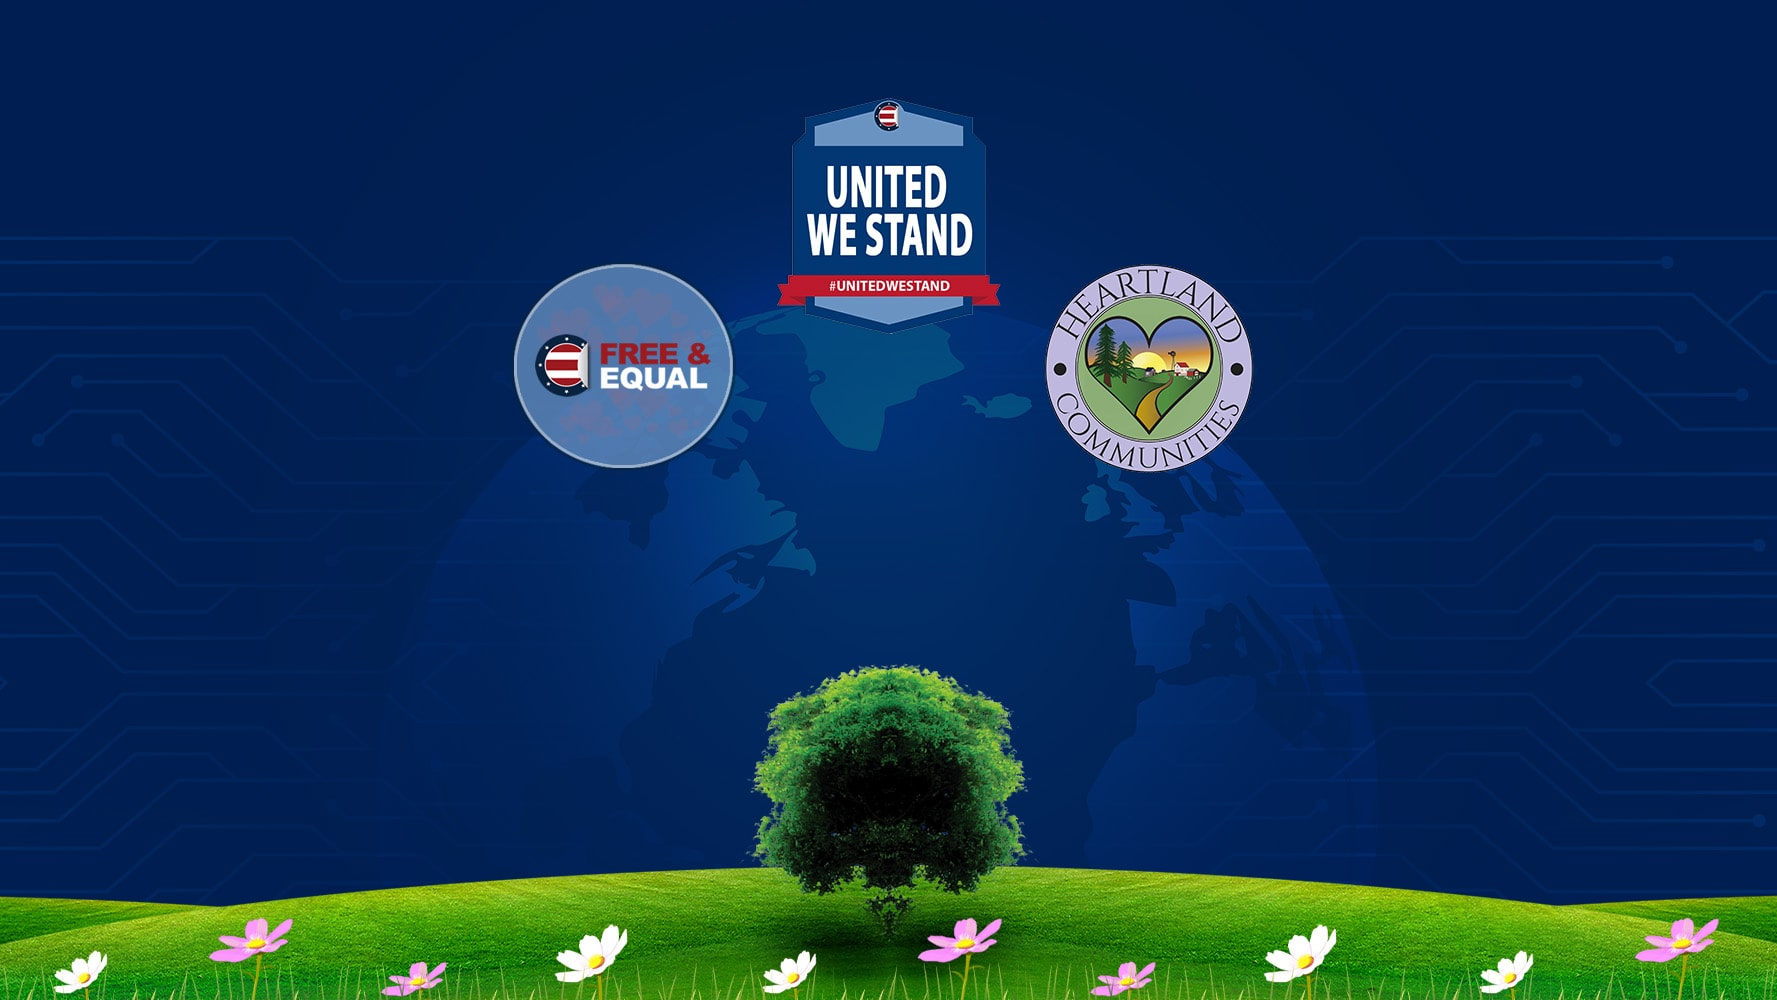 1. Earth Day at Heartland Communities